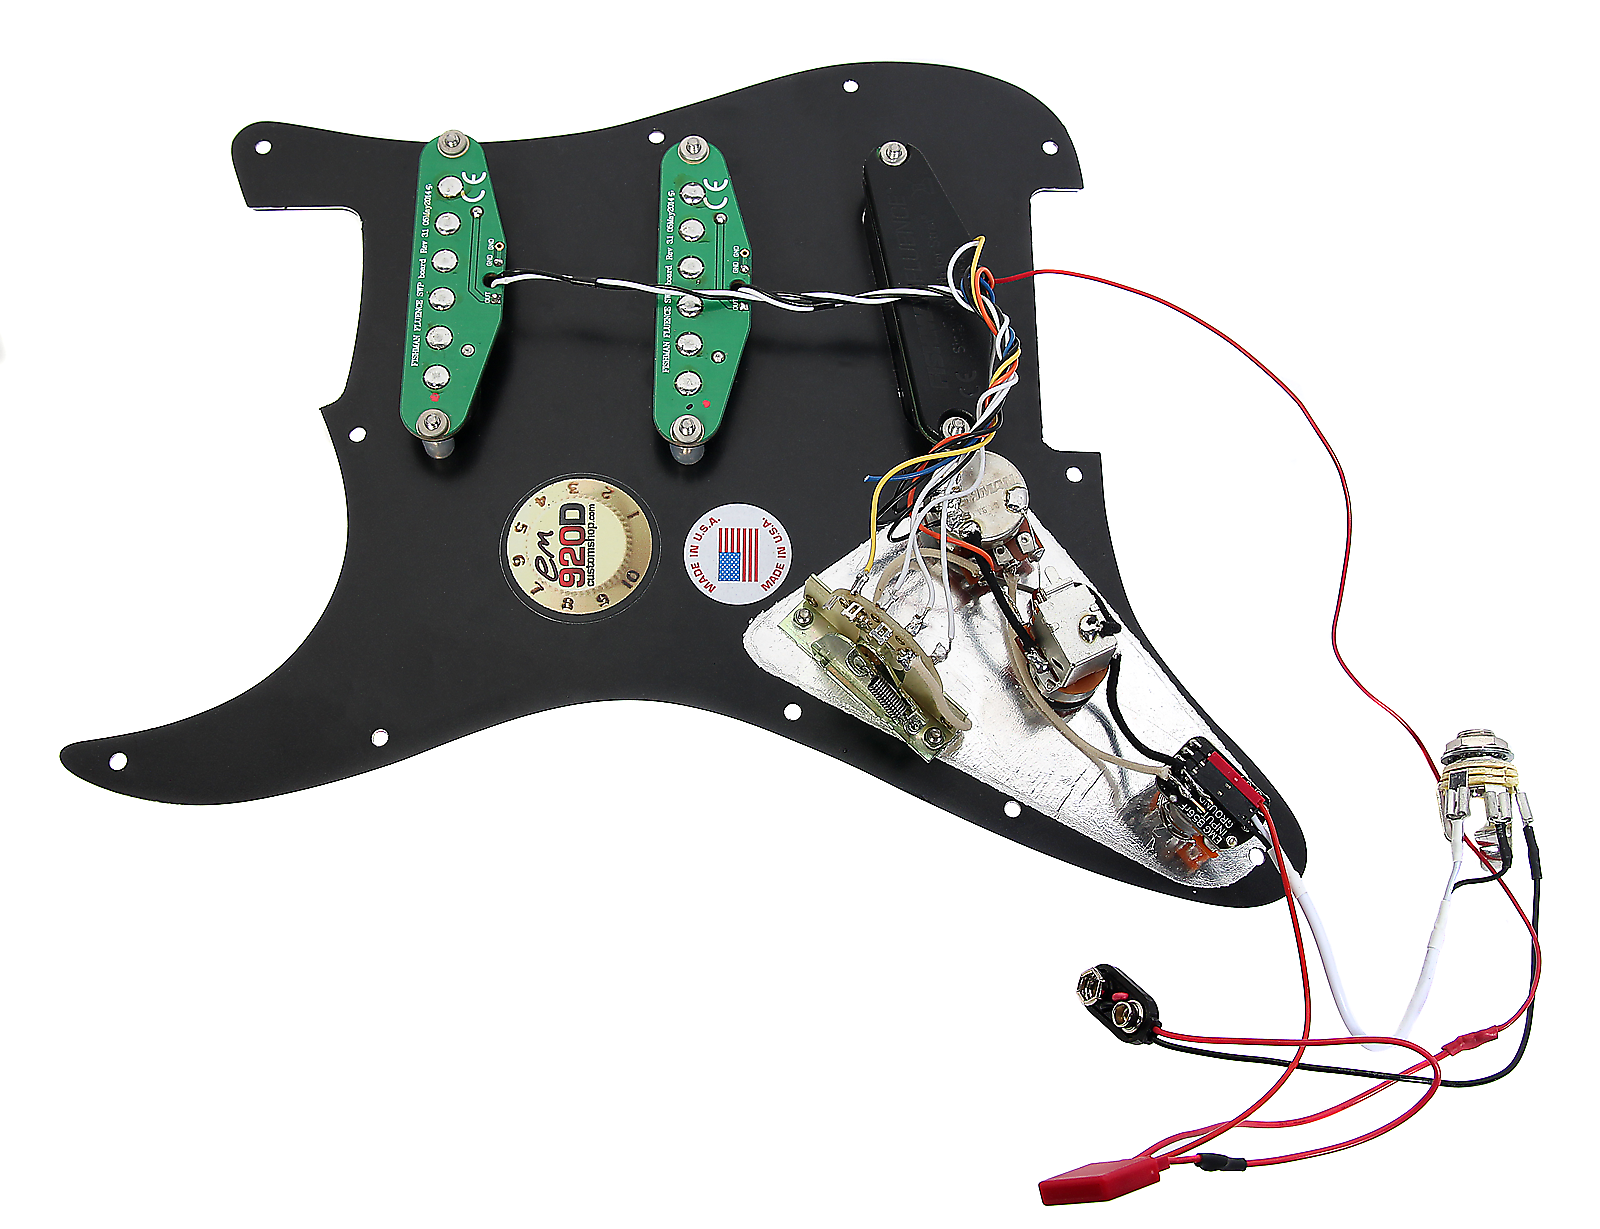 Solderless Guitar Wiring Diagrams Auto Electrical Diagram Emg Humbucker Attractive Pickups Ornament